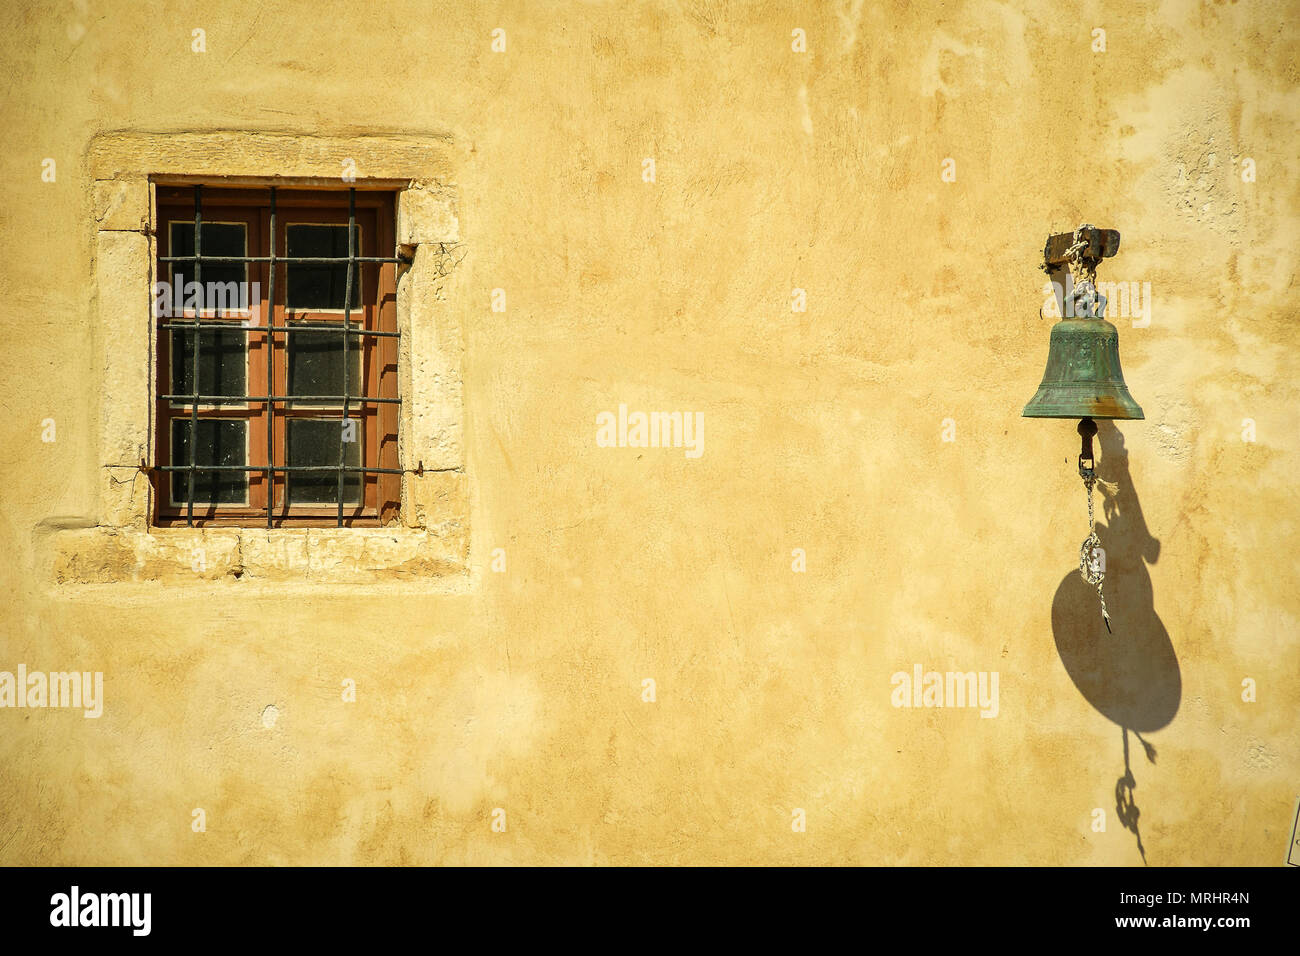 window bell wall - Stock Image